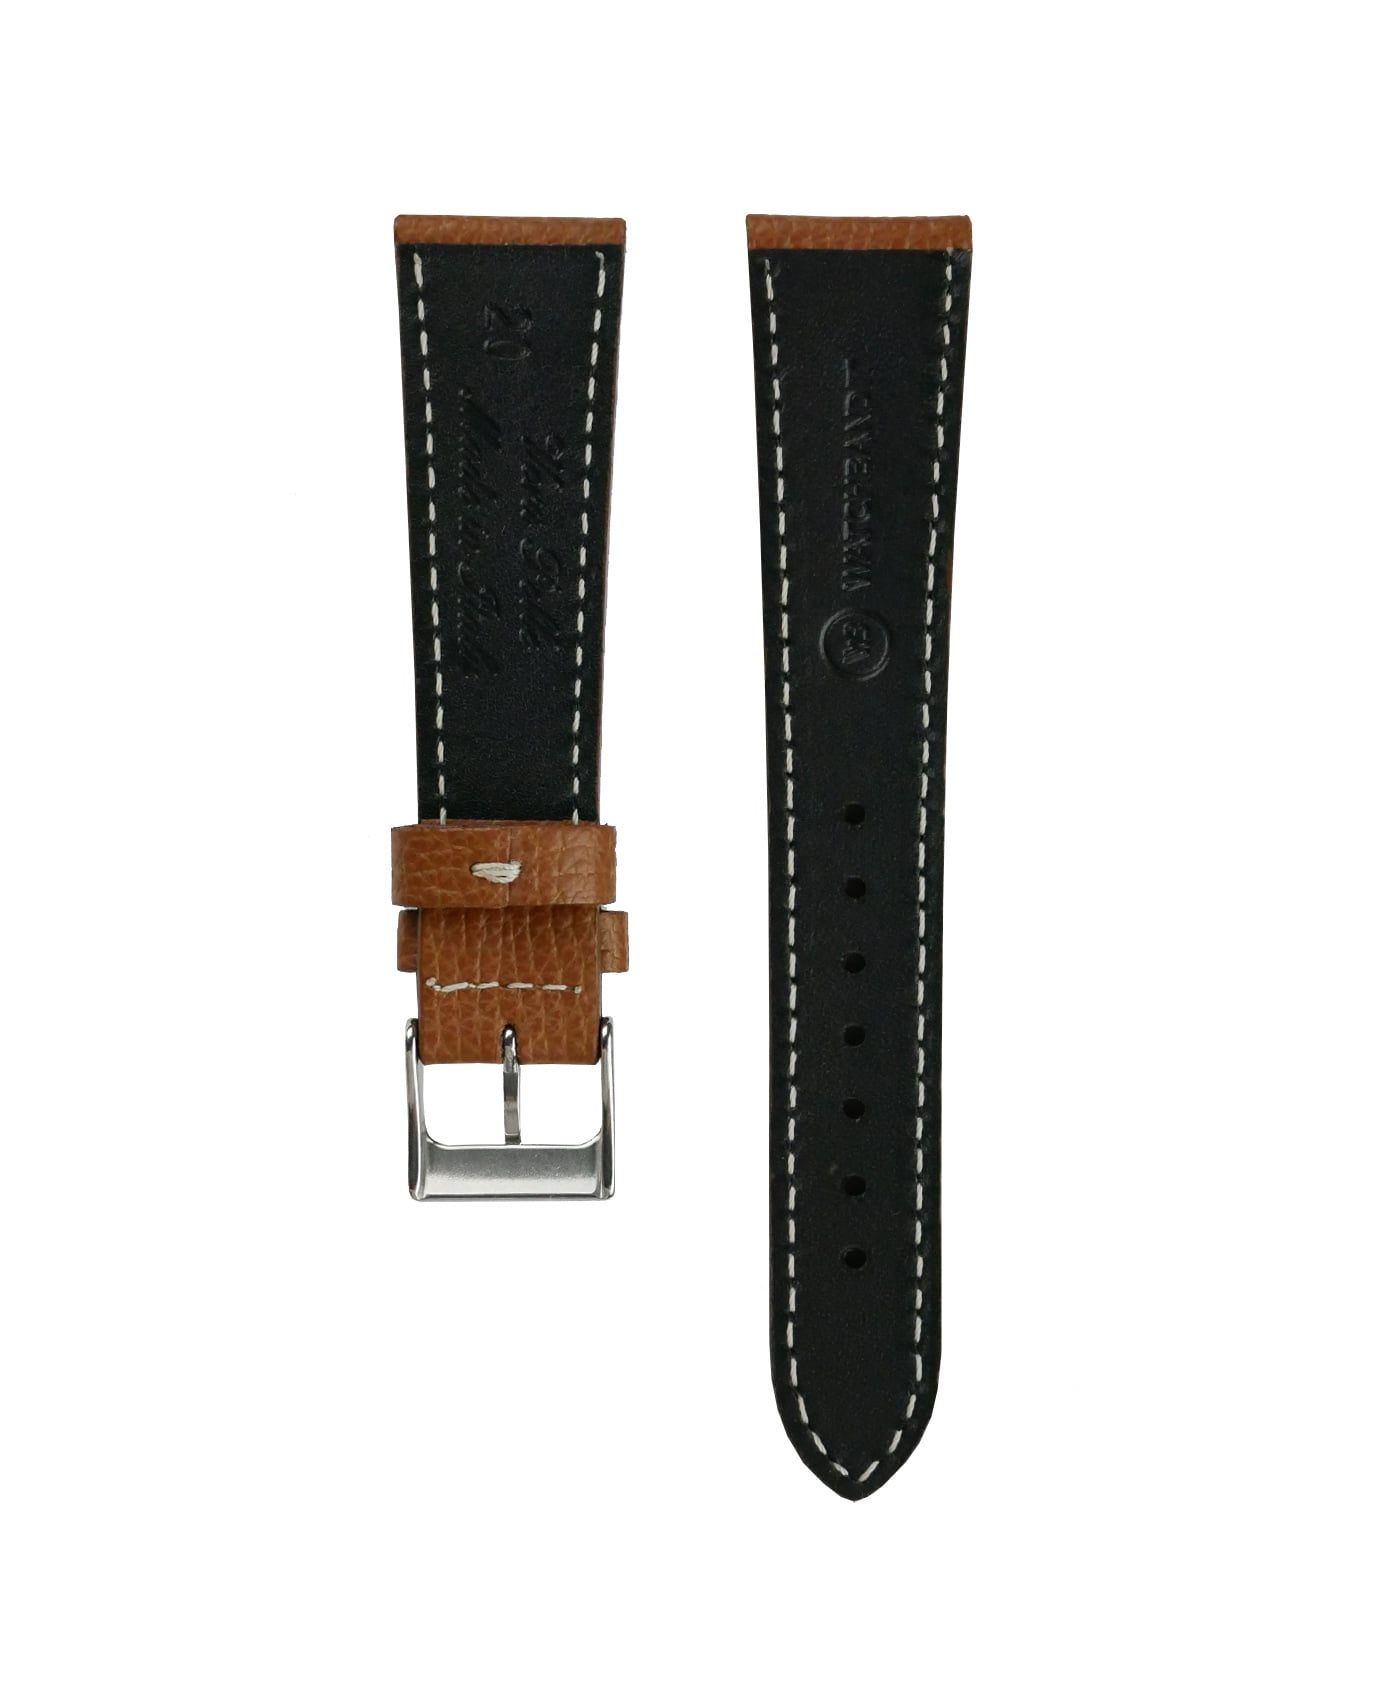 Textured calfskin leather watch strap tanned light brown back watchbandit